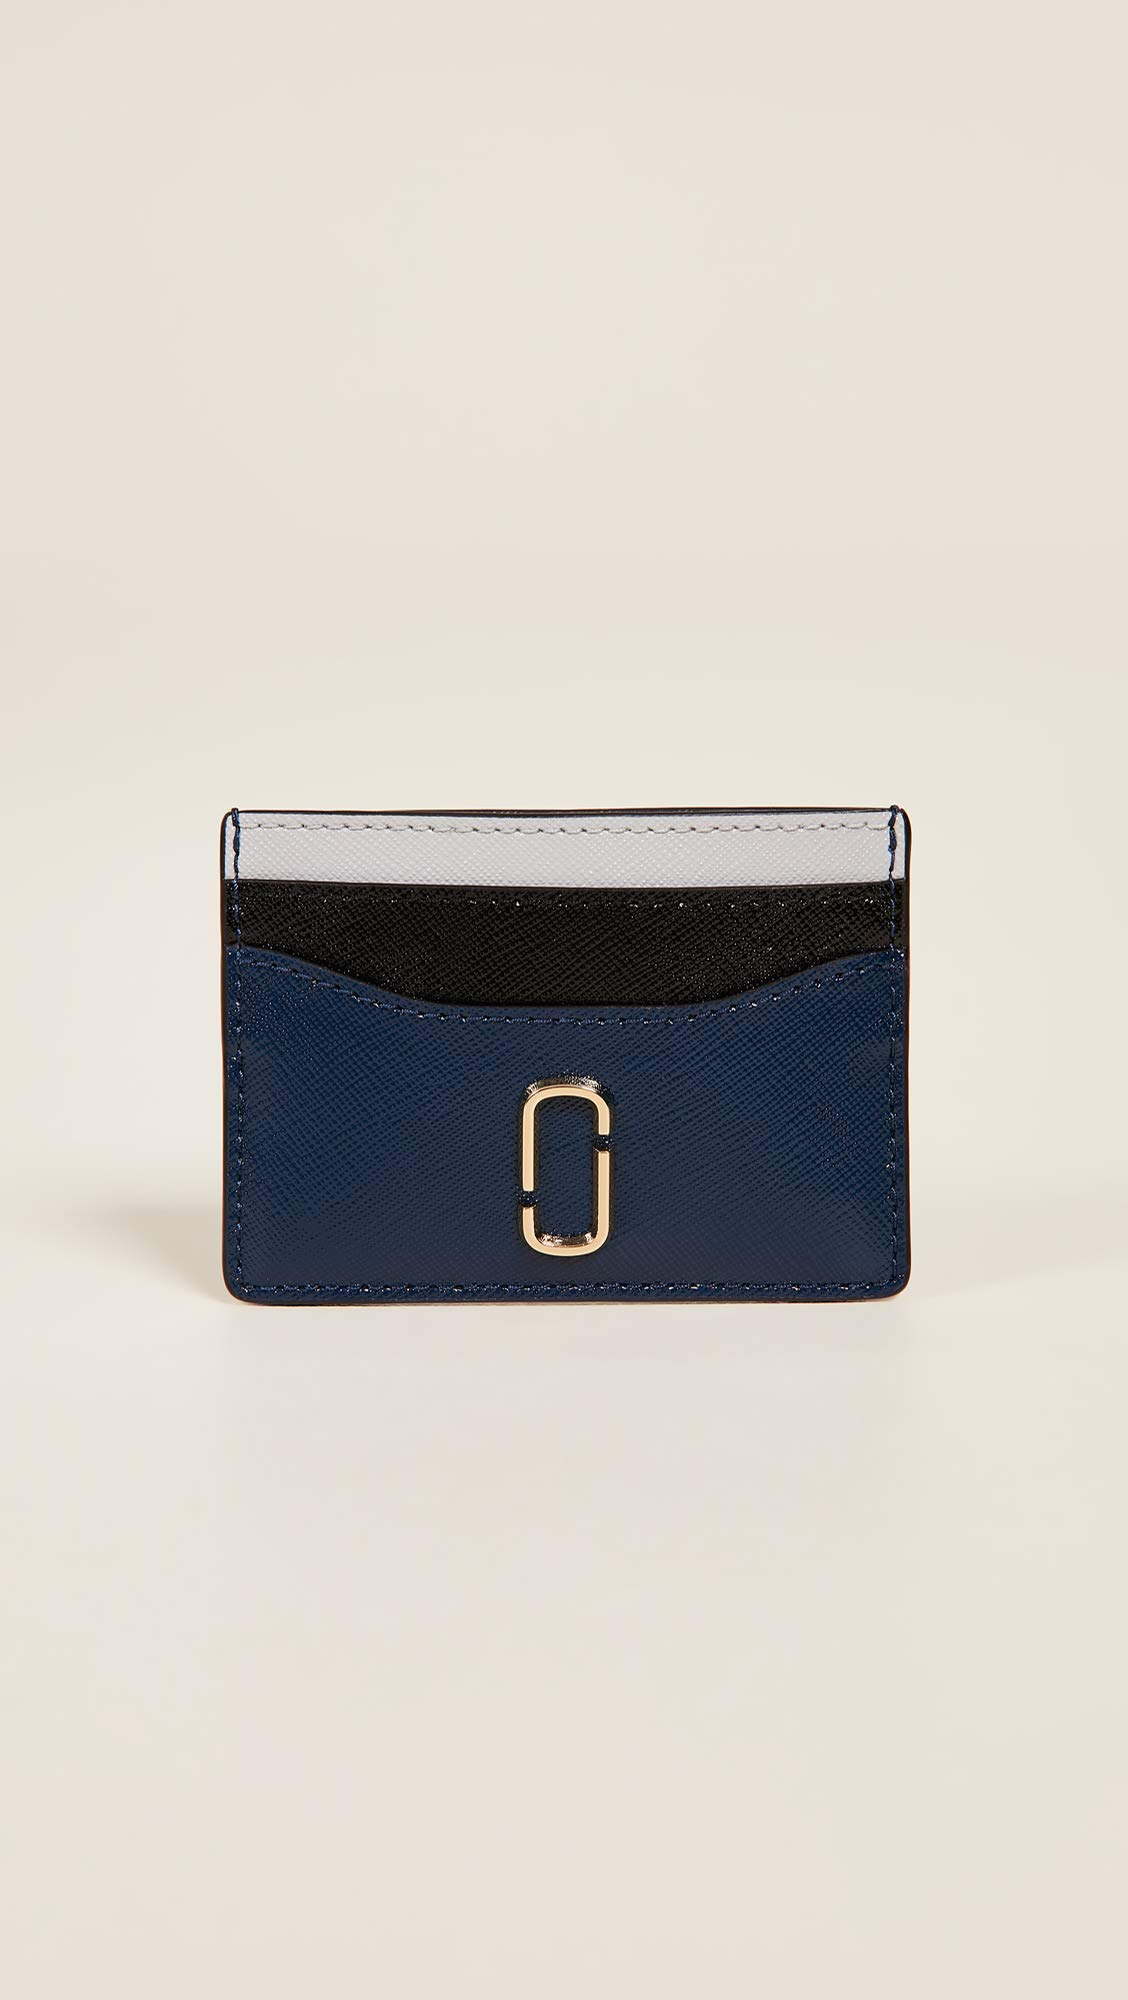 Marc Jacobs Women's Snapshot Card Case, Blue Sea Multi, One Size by Marc Jacobs (Image #2)